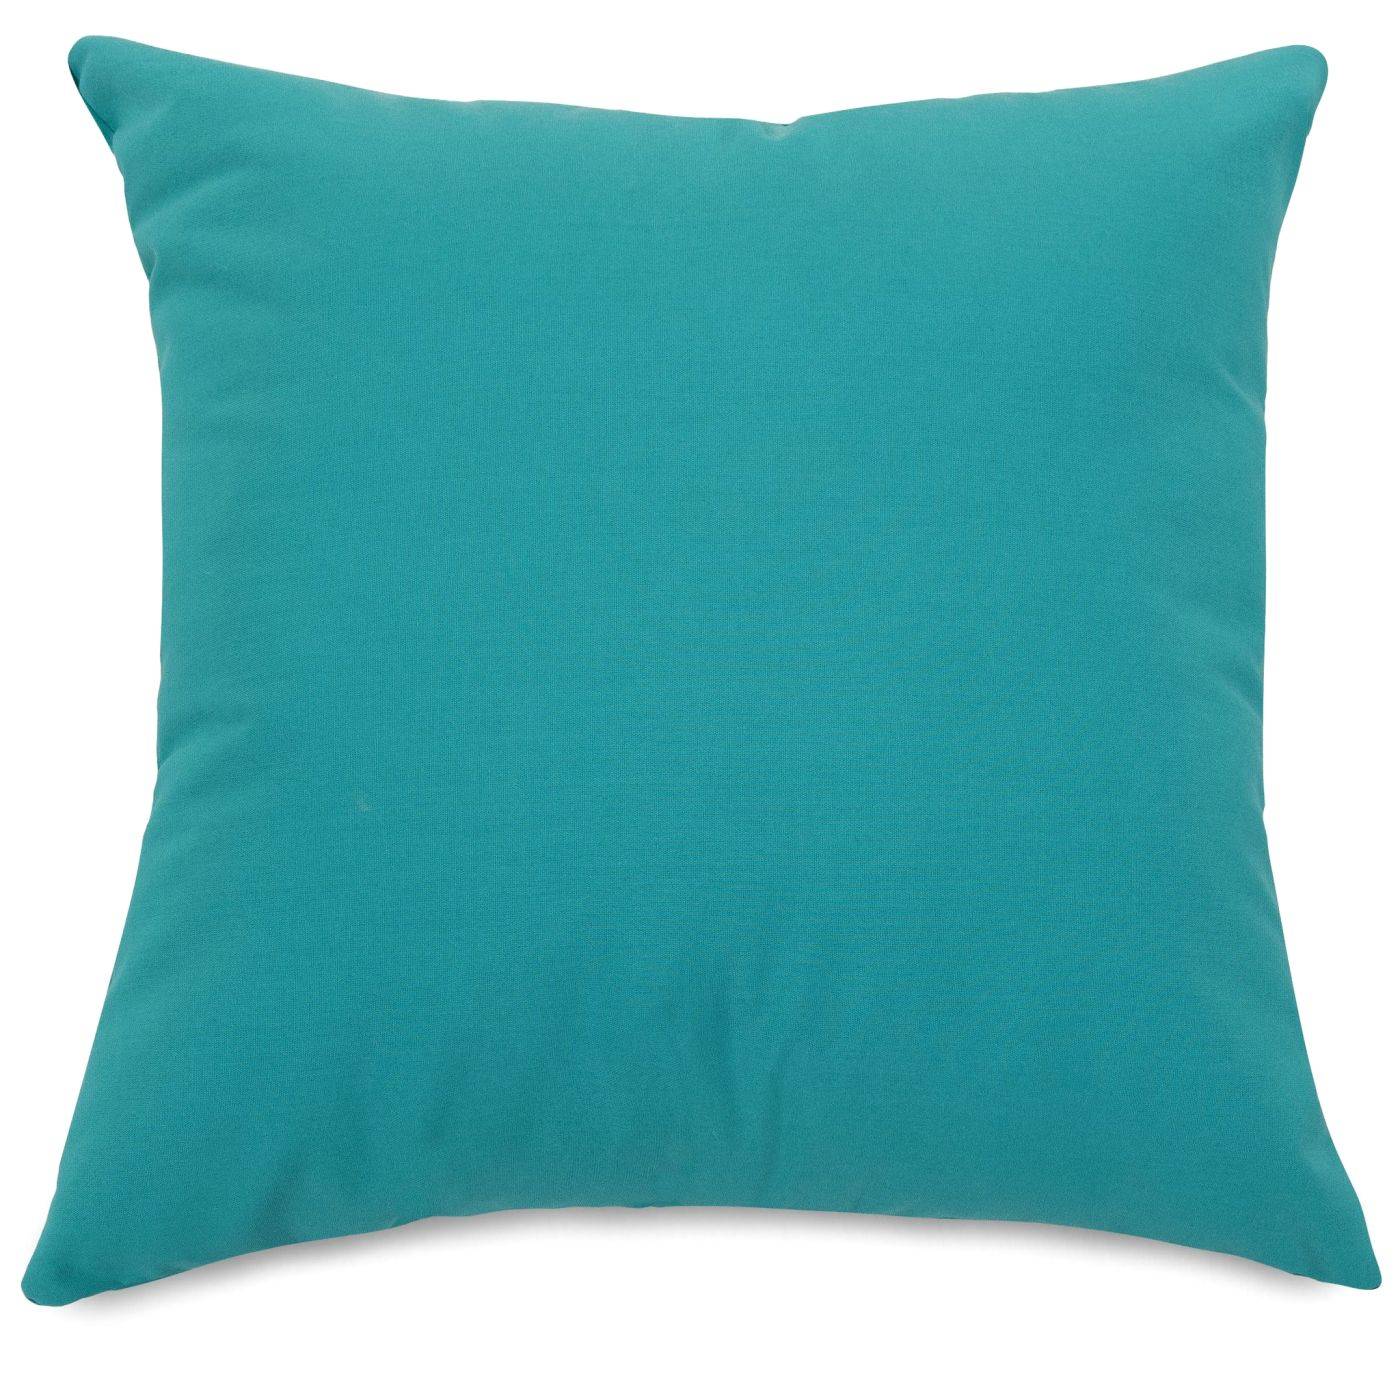 Majestic Home Teal Large Pillow 85907243035. Only $42.90 at Contemporary Furniture Warehouse.